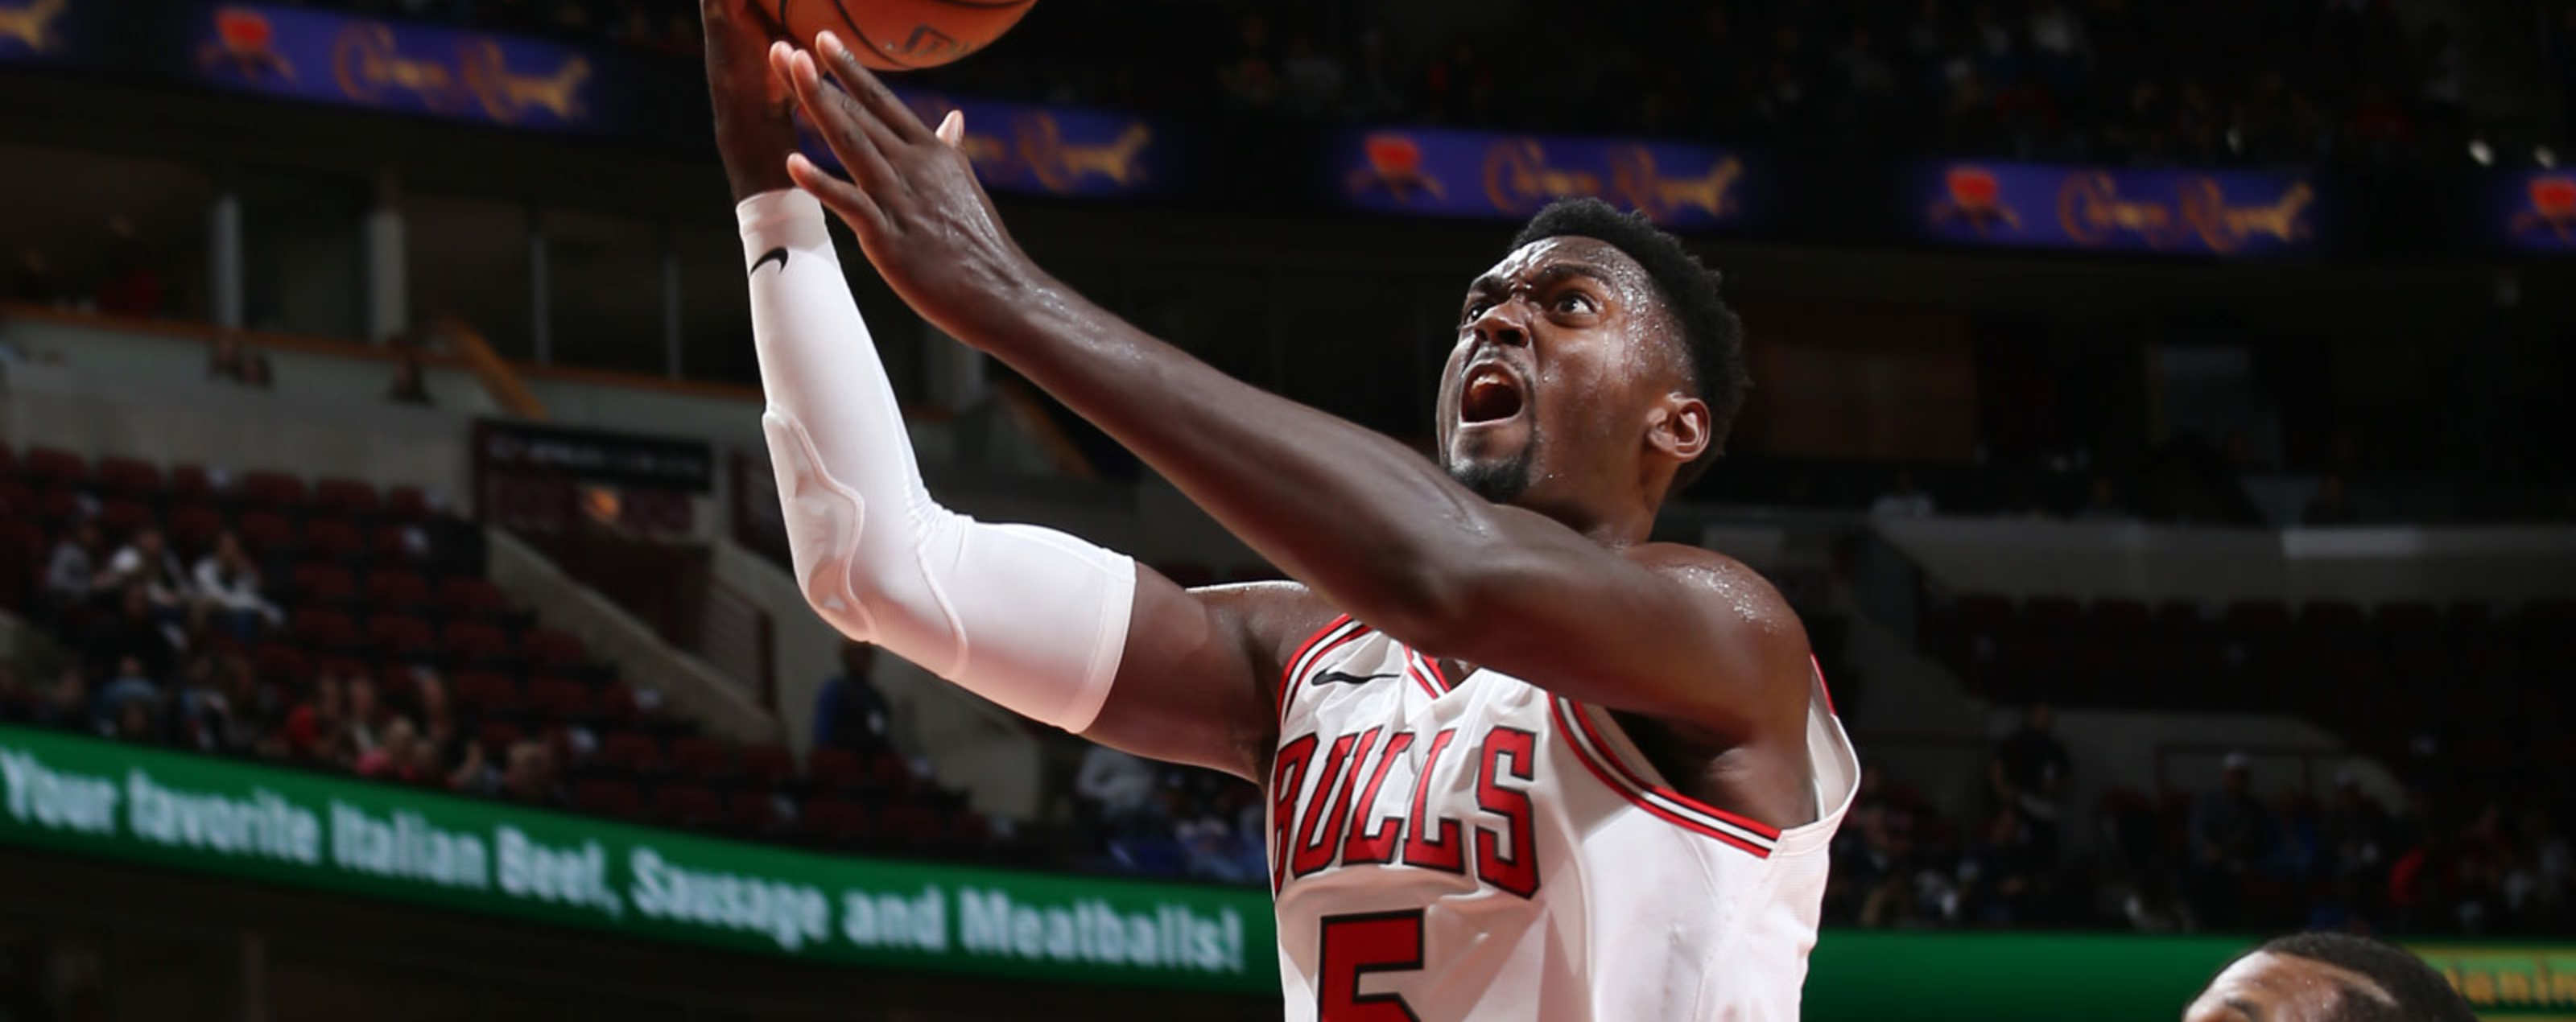 obby Portis #5 of the Chicago Bulls handles the ball against the New Orleans Pelicans during a pre-season game on September 30, 2018 at the United Center in Chicago, Illinois.